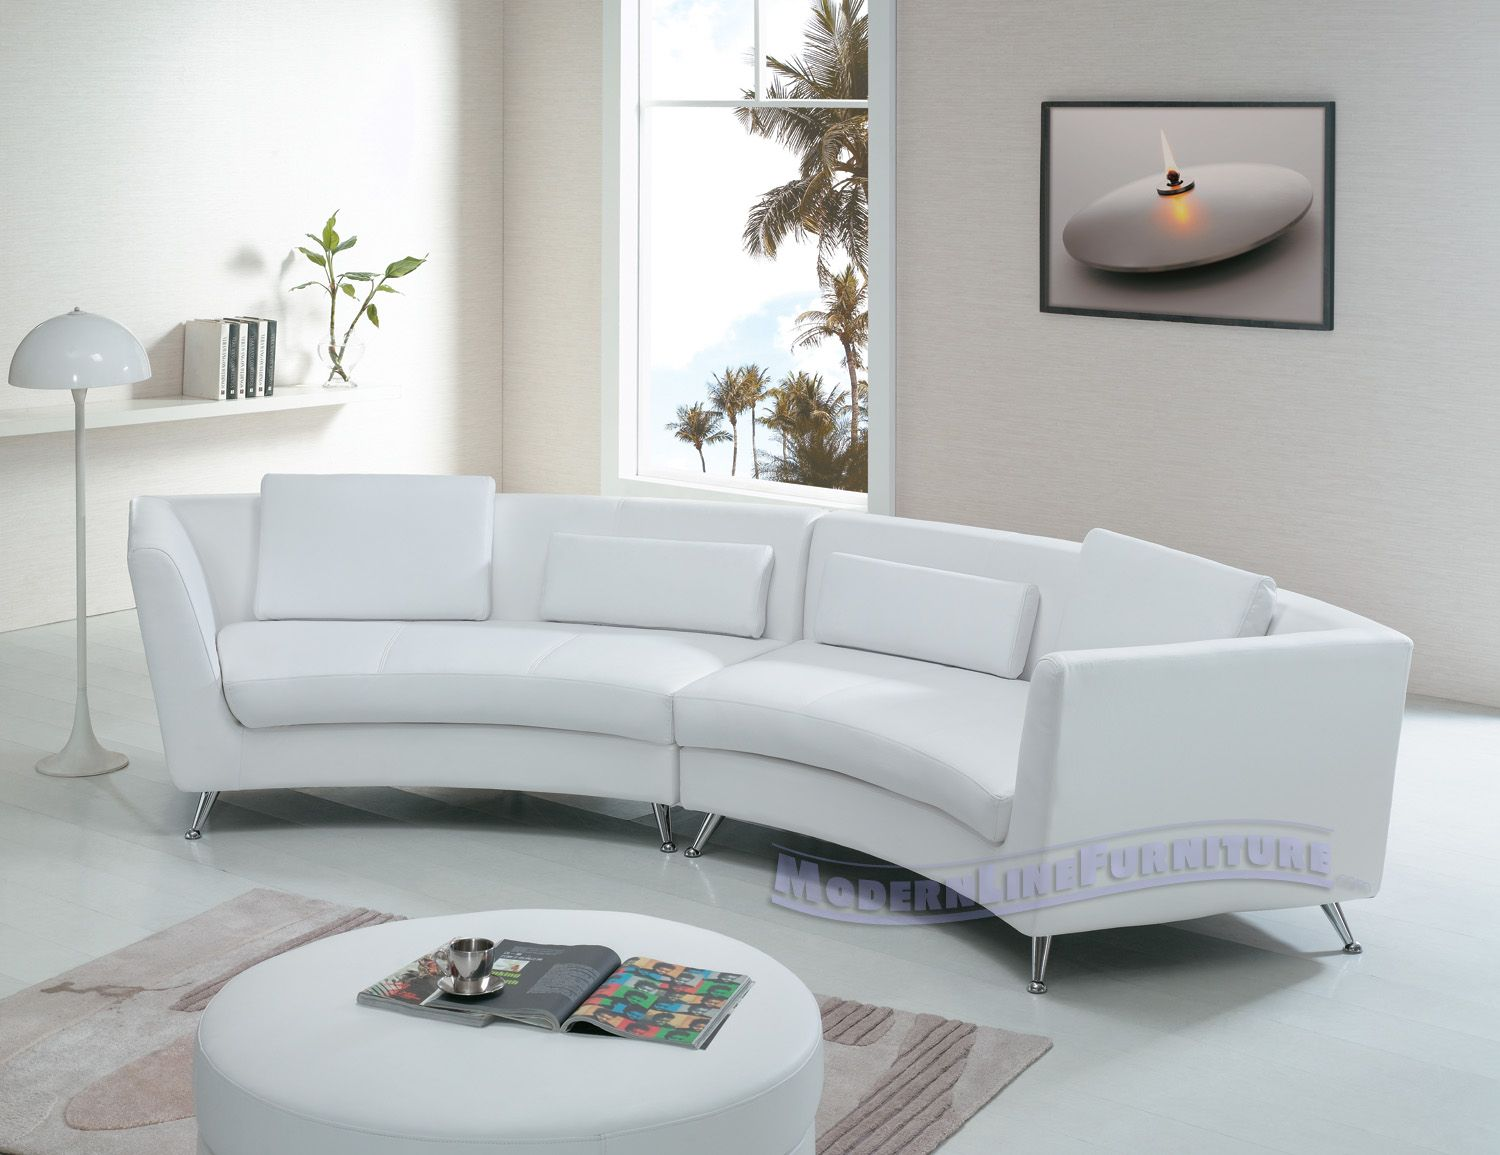 Sofa Couch Sofas Oval Couch Sofa Curved Leather Sofas Curved Couches Sofas In